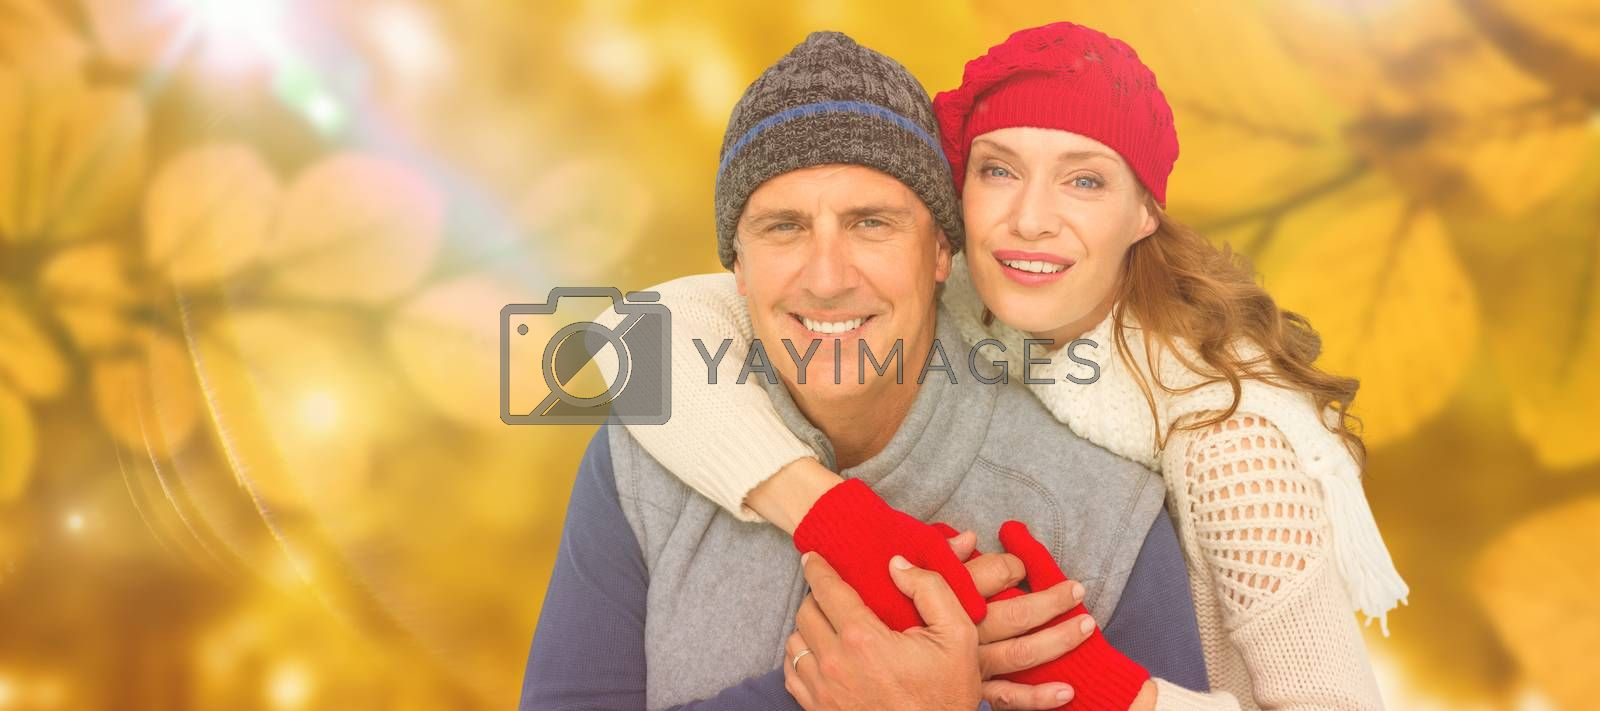 Happy couple in warm clothing against autumn scene